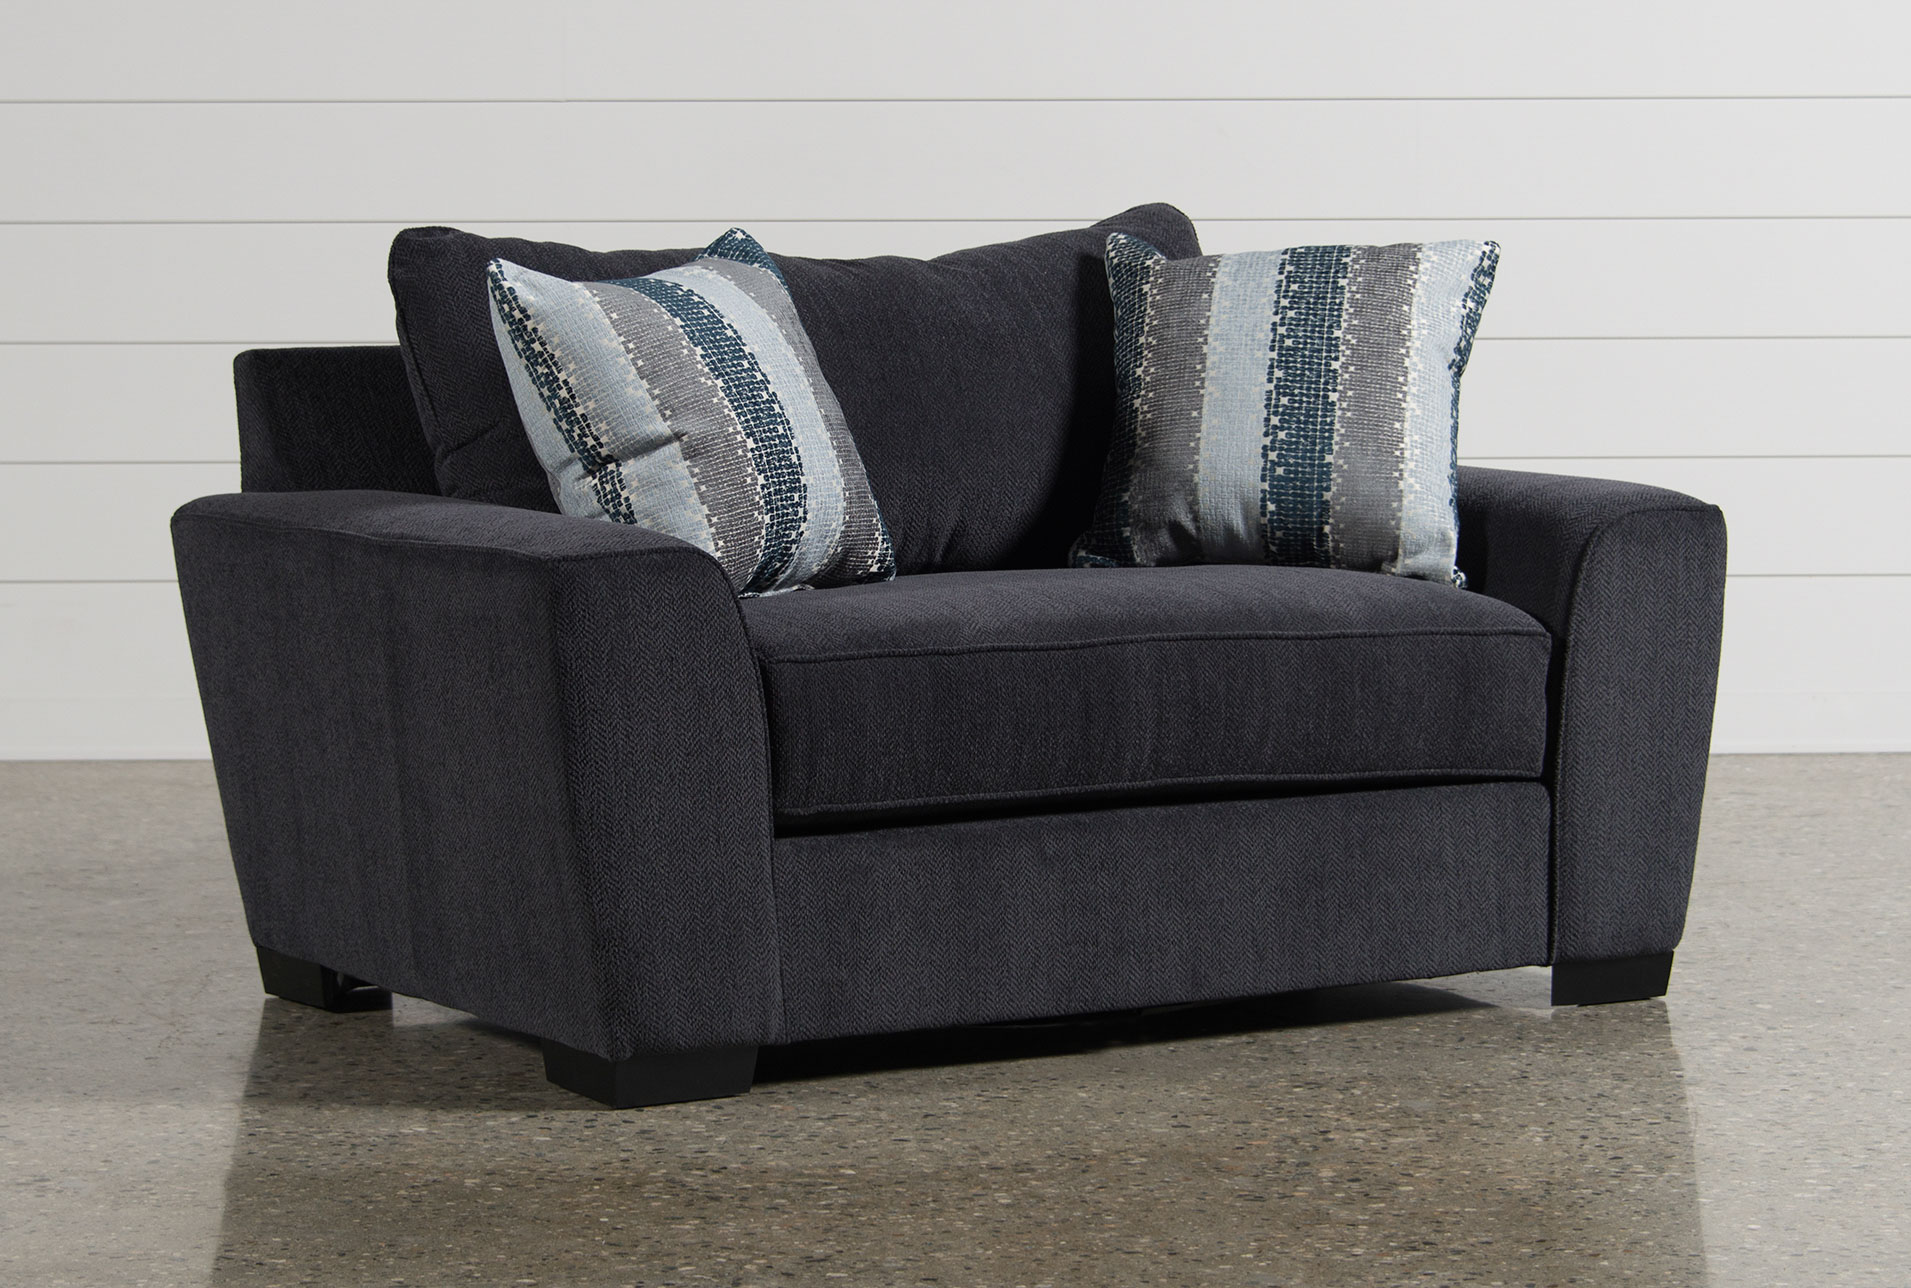 Sofa Chairs for Your Home Office Living Spaces